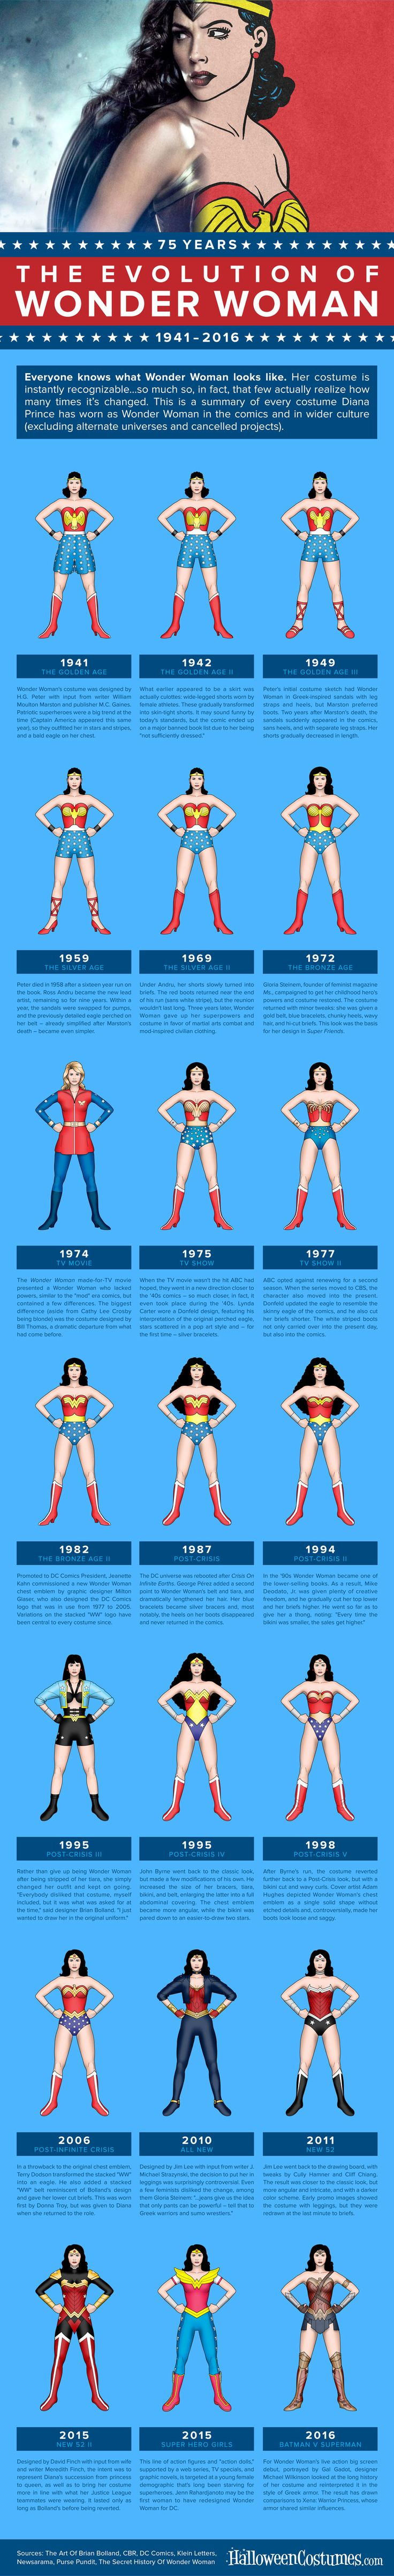 Wonder Woman's Costume Has Changed SO MUCH Since 1941